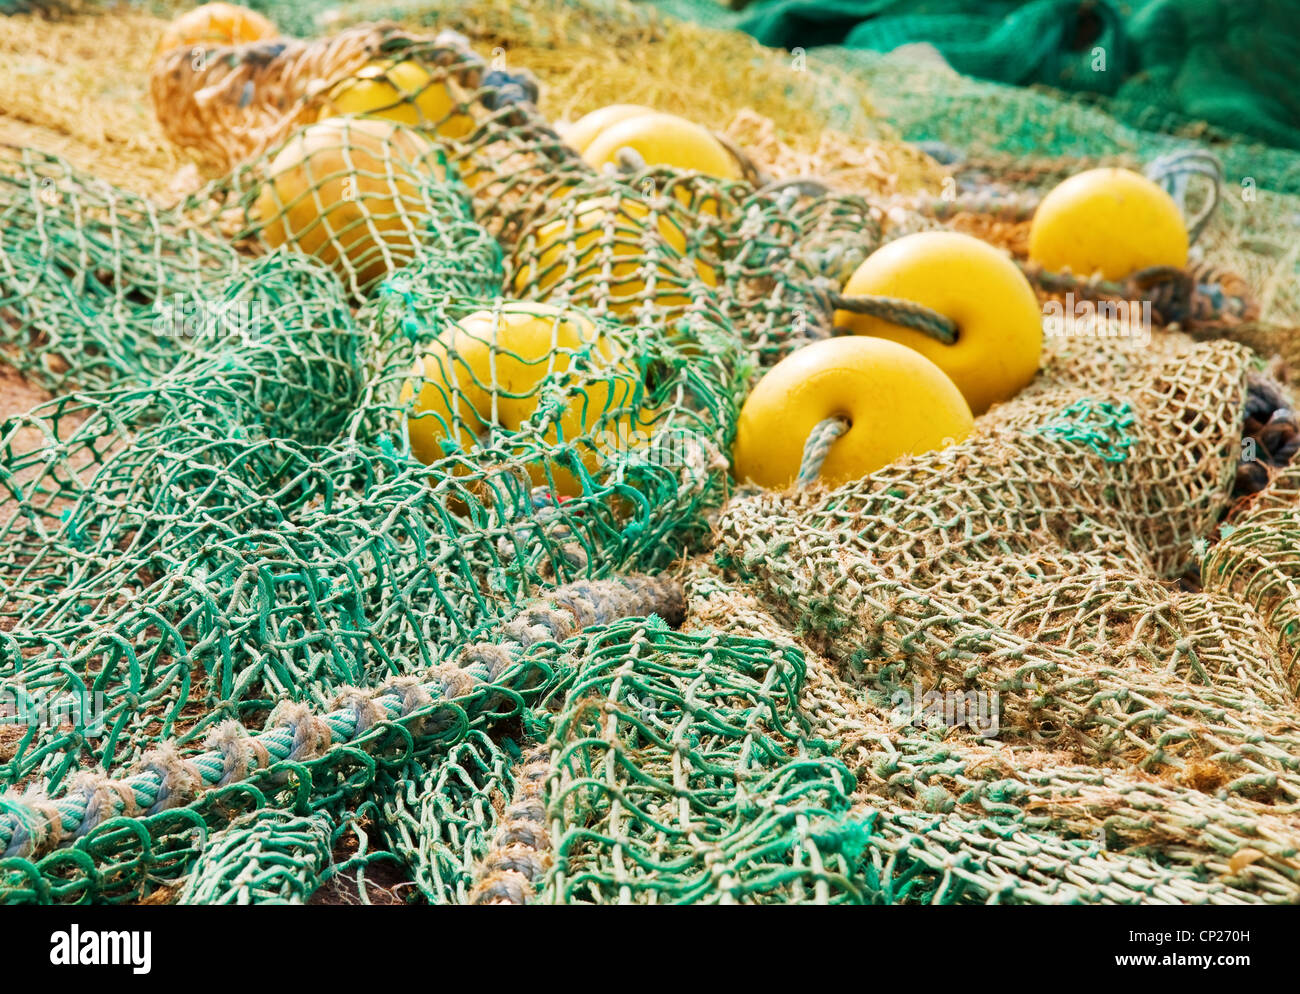 Colorful nets, coil of ropes and yellow floats used by fishermen for deep sea fishing. - Stock Image